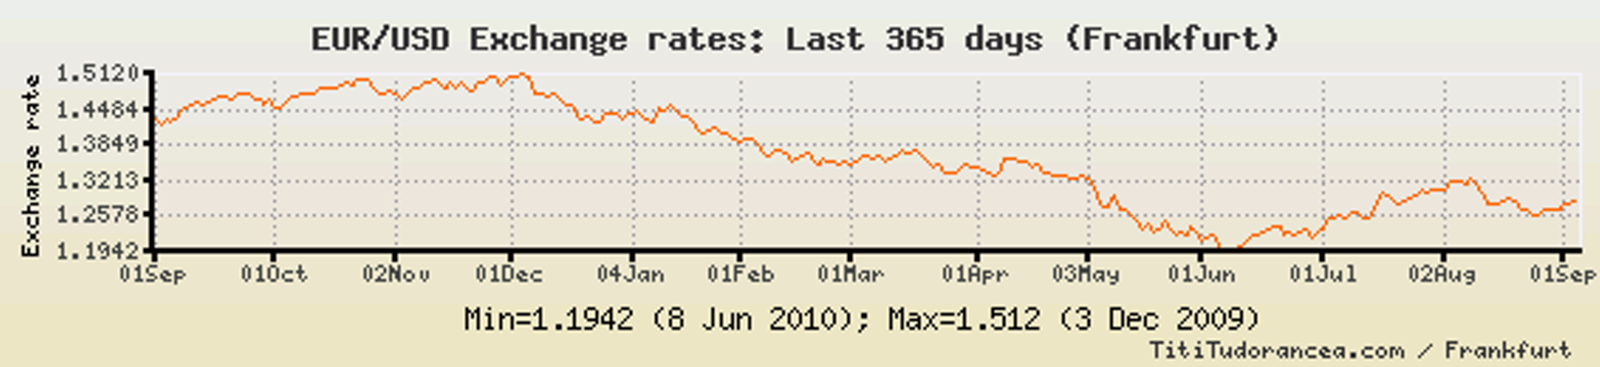 http://einarbb.blog.is/users/72/einarbb/img/euroe_vs_dollar_2010.png